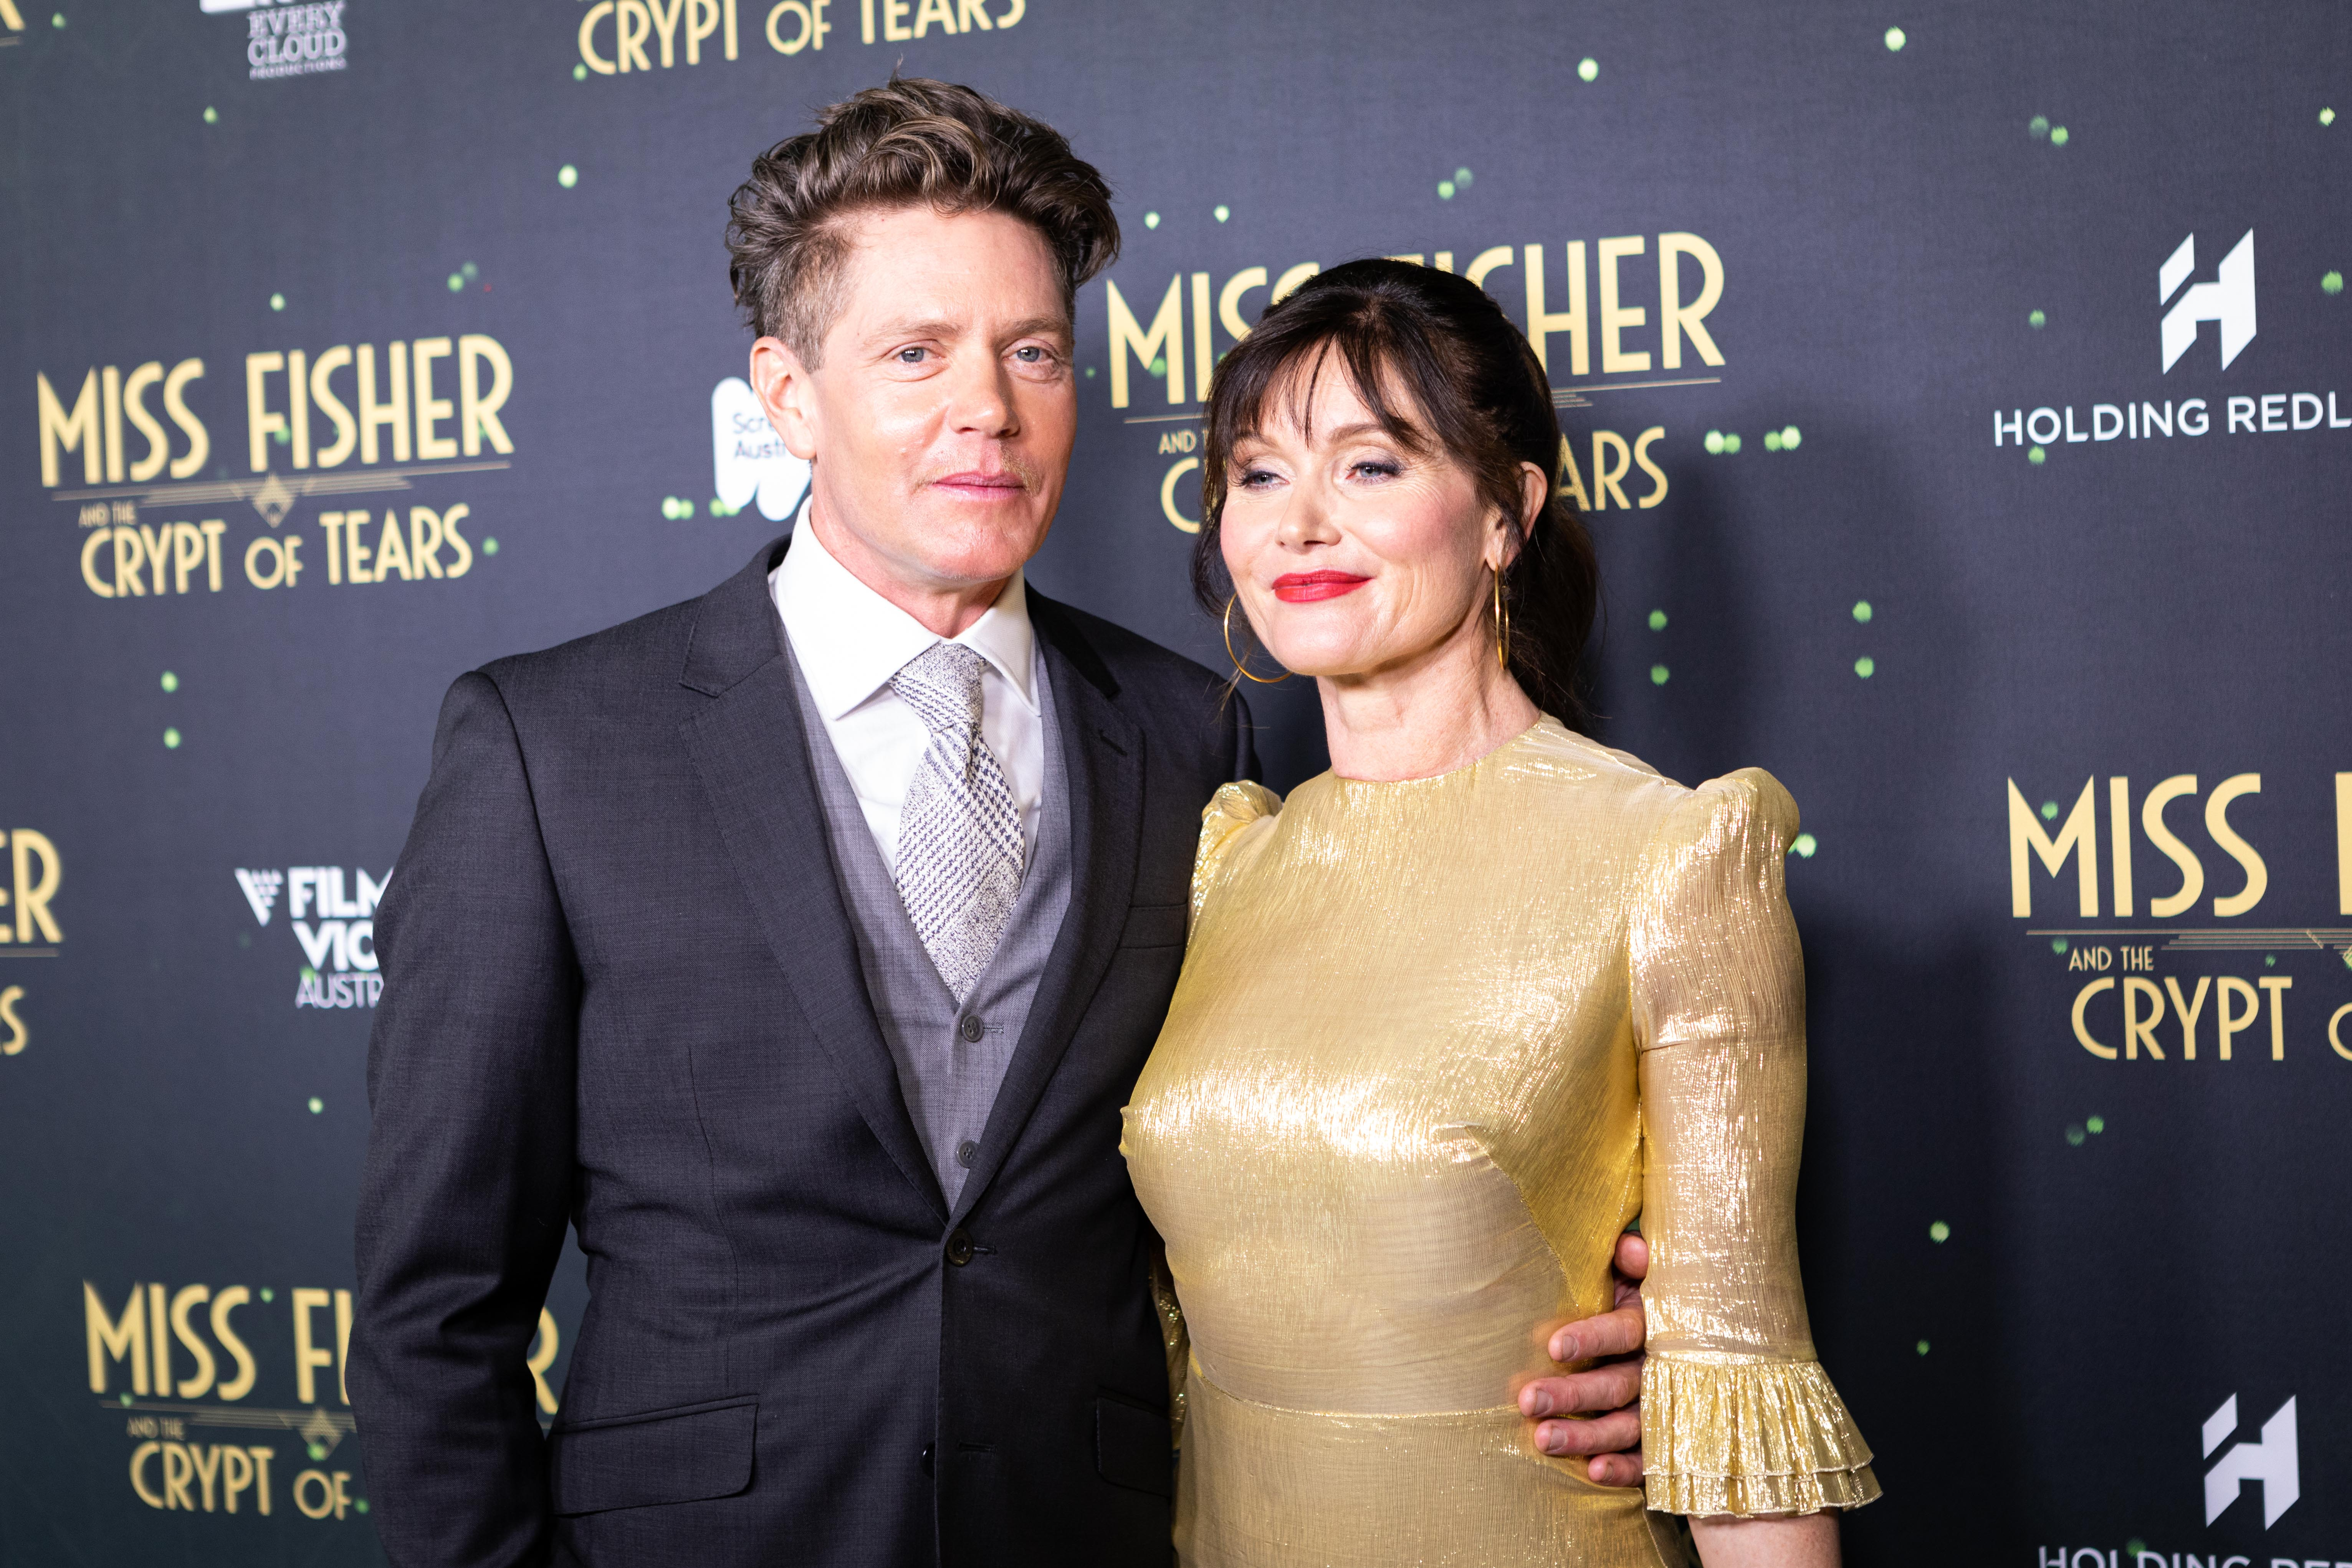 Miss Fisher and the Crypt of Tears stars Essie Davis and Nathan Page at the Melbourne premiere screening